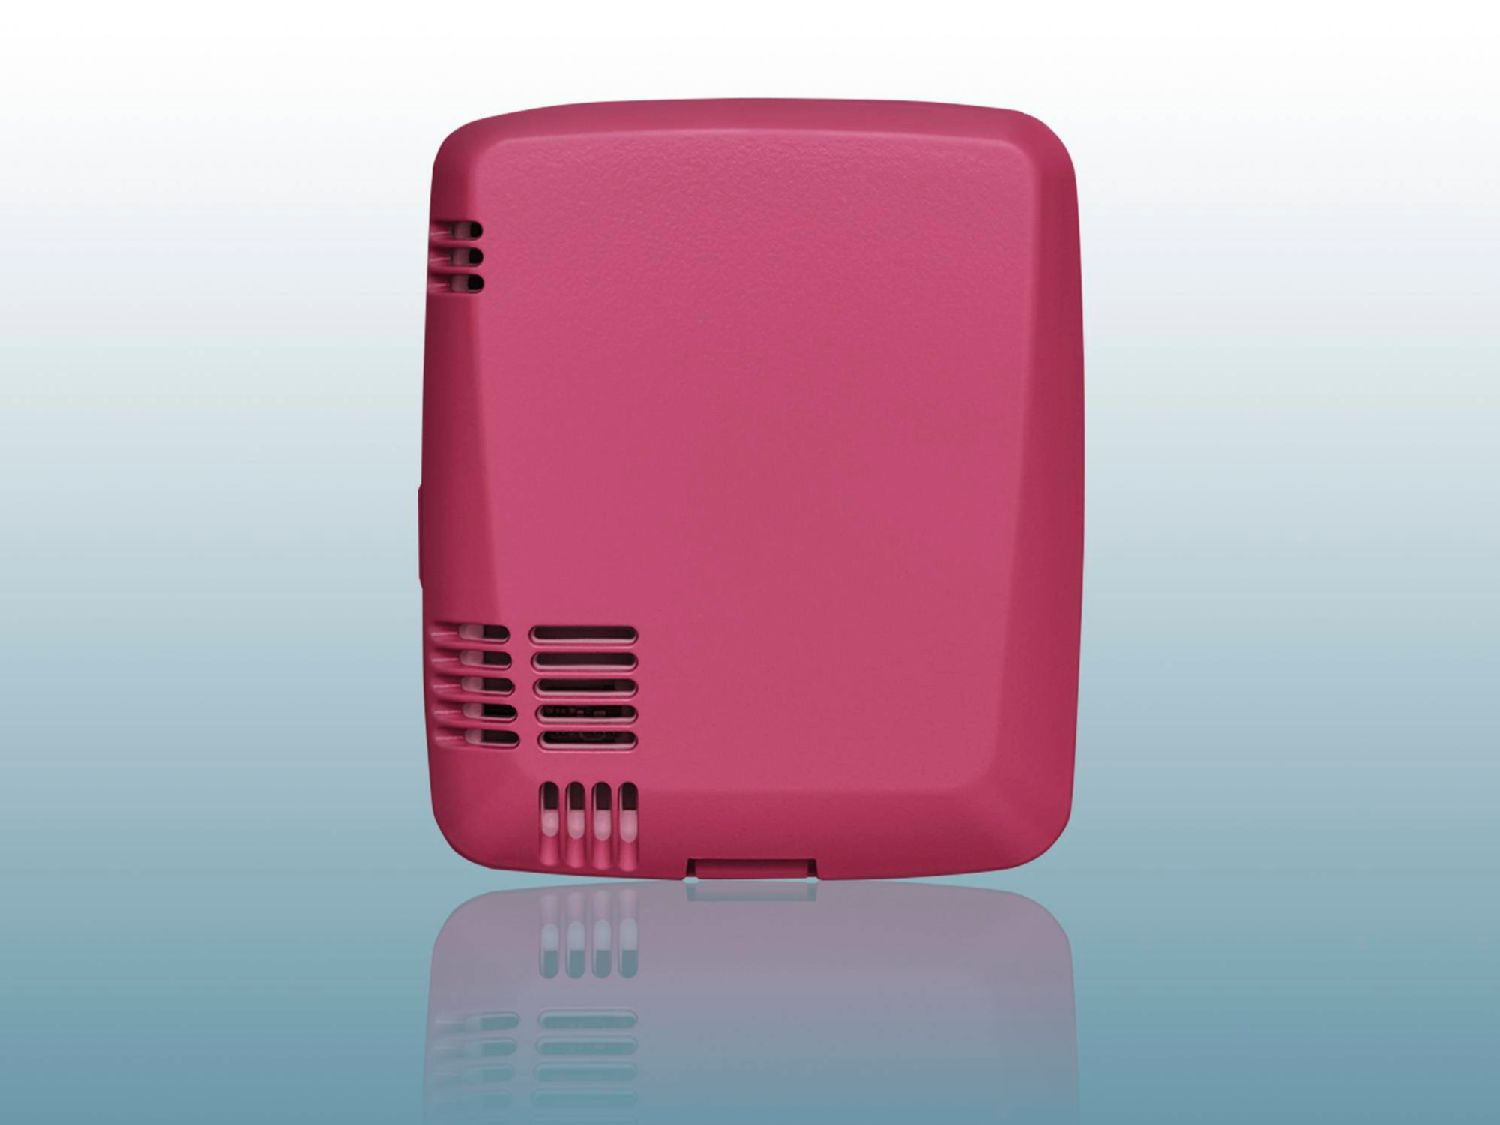 Data logger WiFi